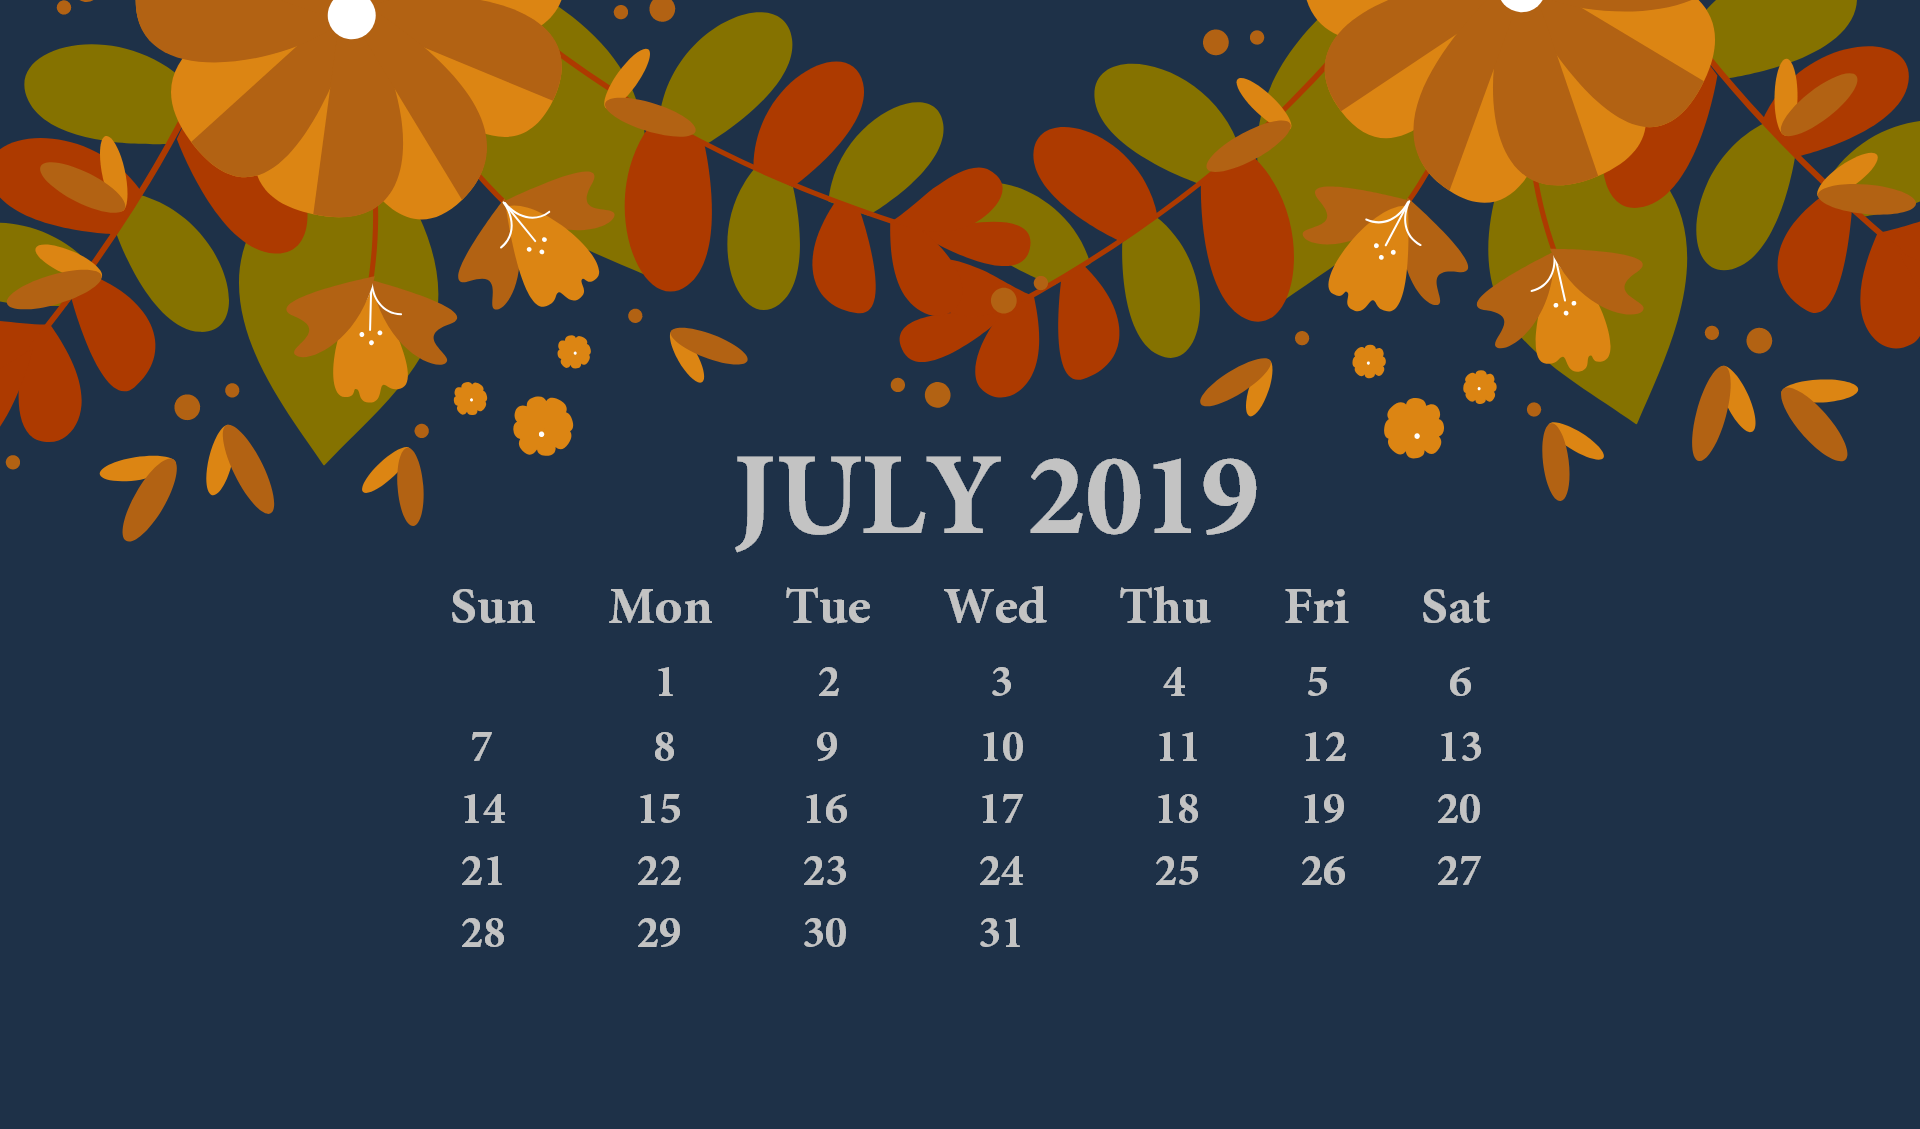 July 2019 Desktop Wallpaper With Calendar Desk Calendar in 2019 1920x1129